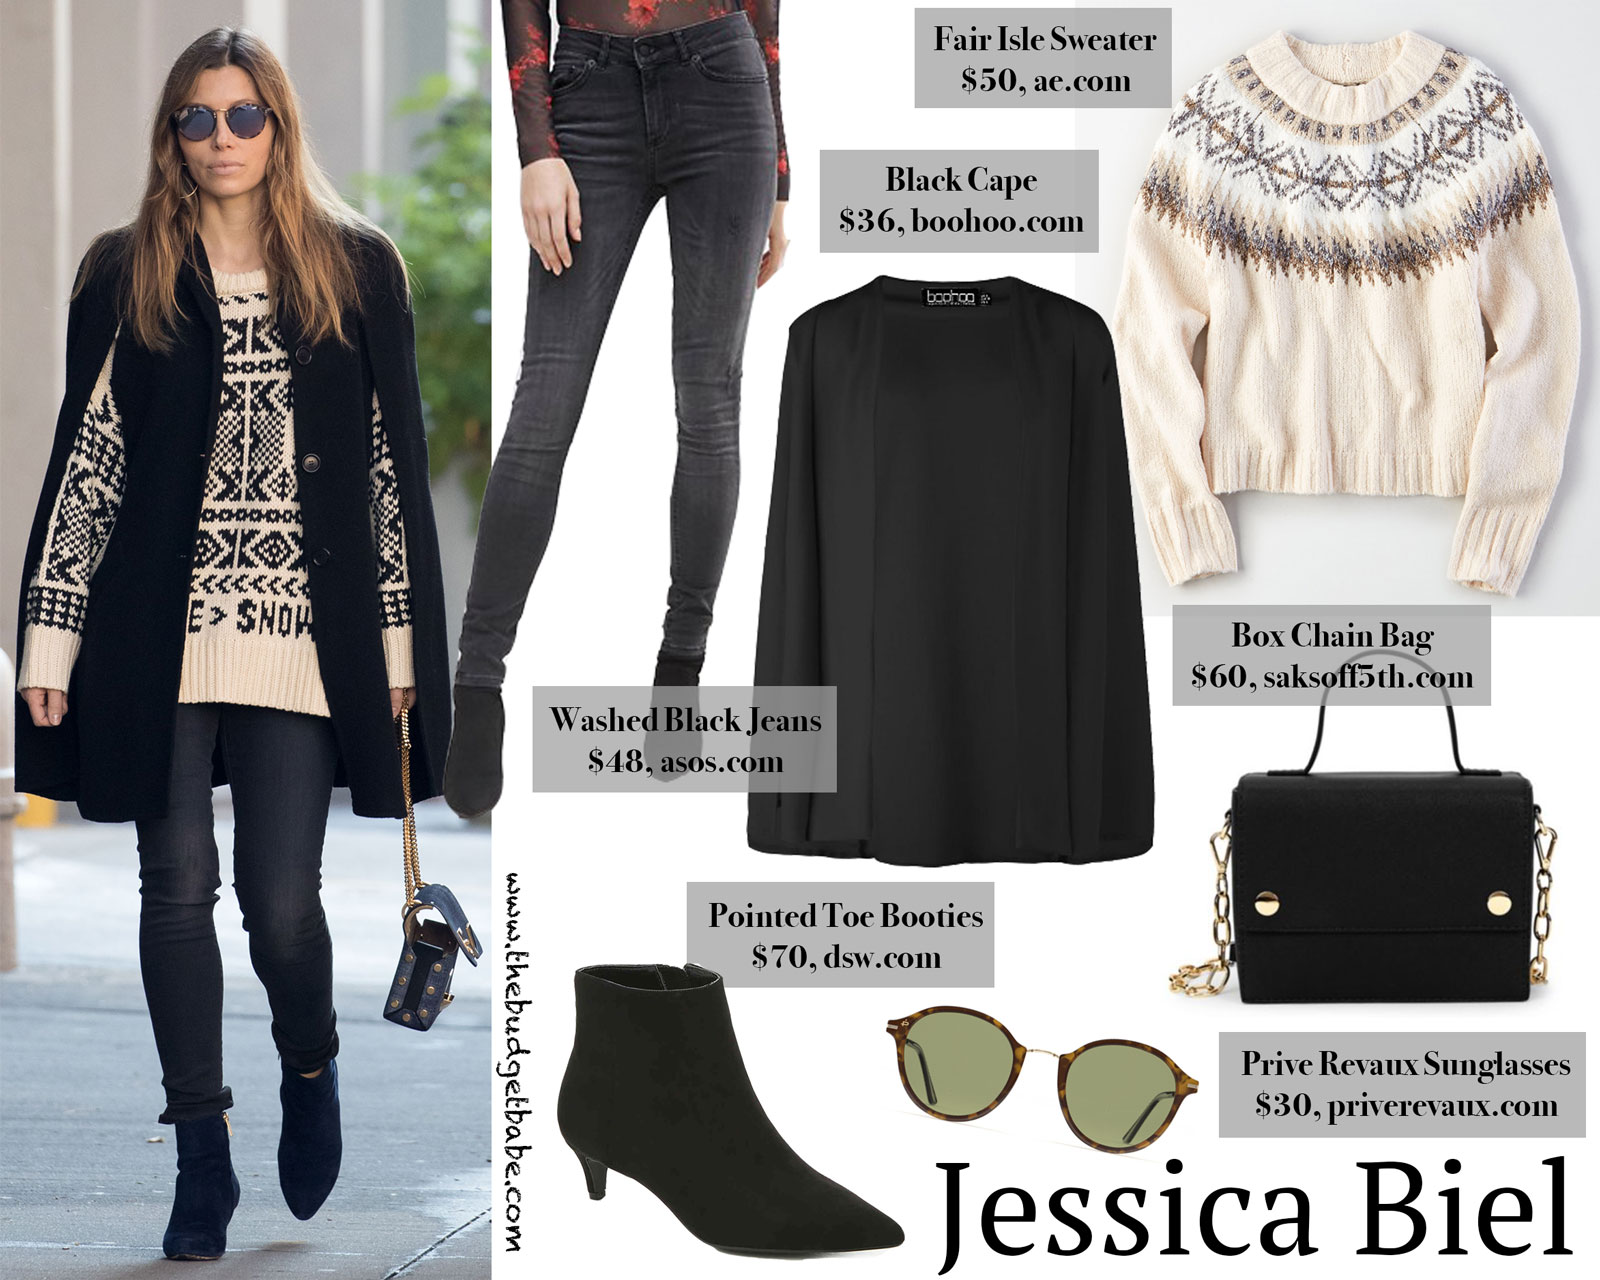 Jessica Biel Cape Look for Less